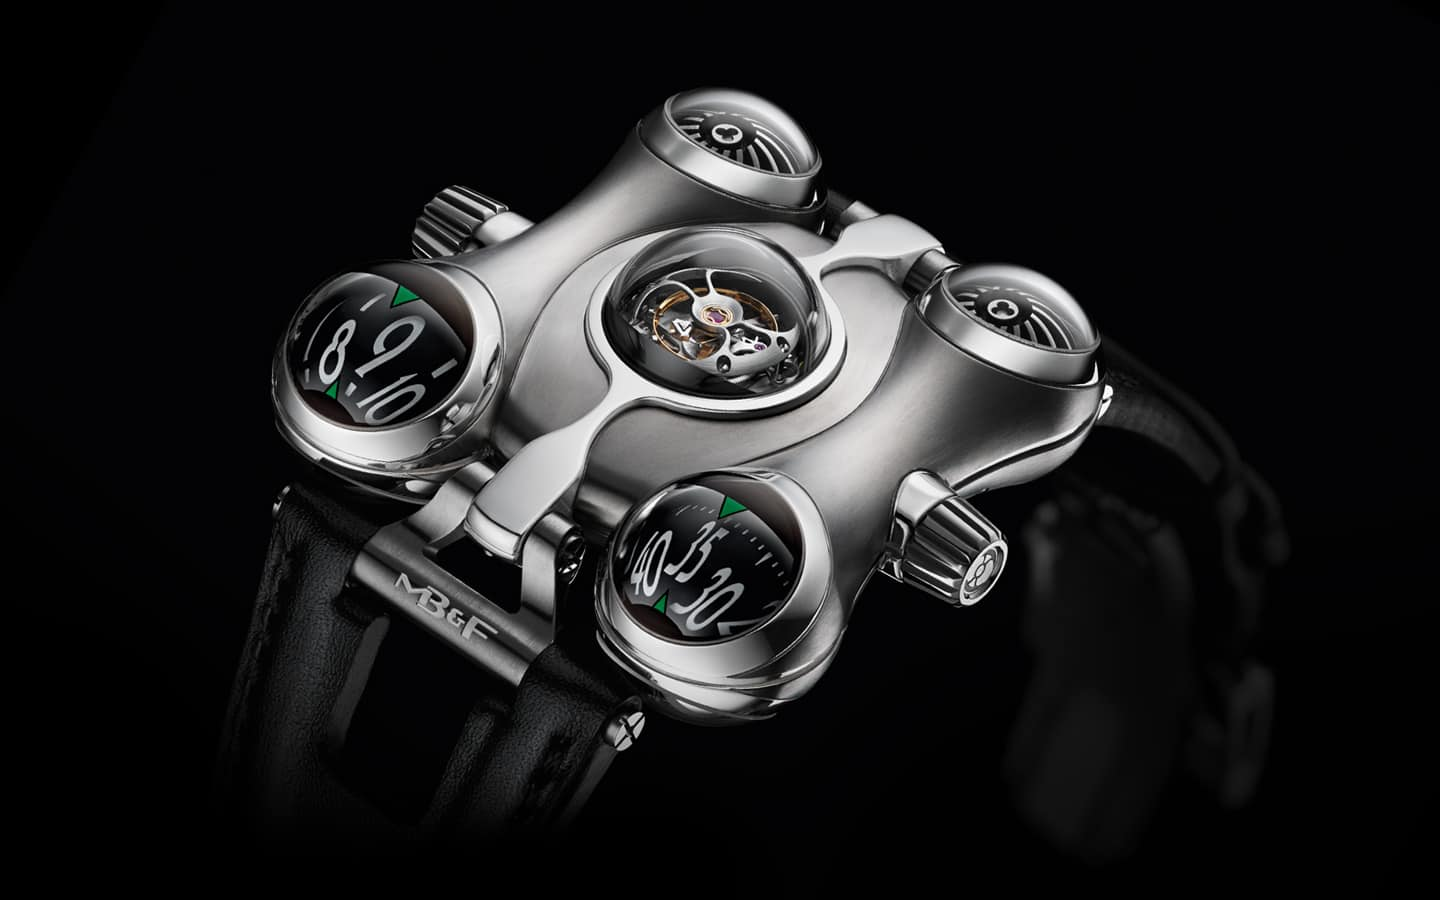 MB&F Horological Machine No.6 (HM6) Space Pirate Watch Exotic Time Piece to Buy